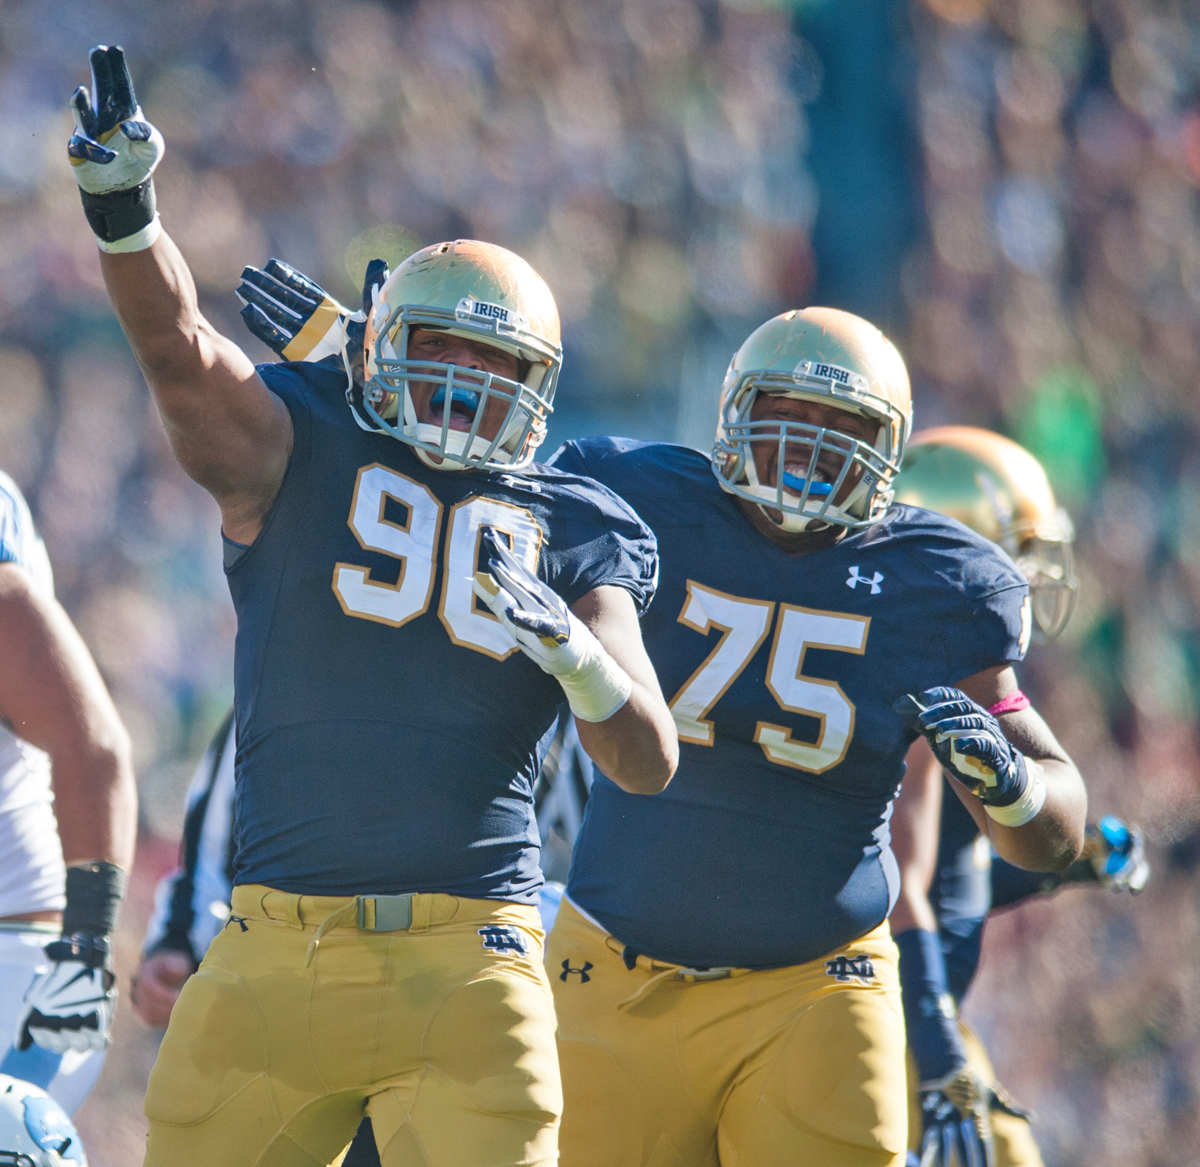 Irish sophomore defensive lineman Isaac Rochell celebrates during Notre Dame's win Saturday.